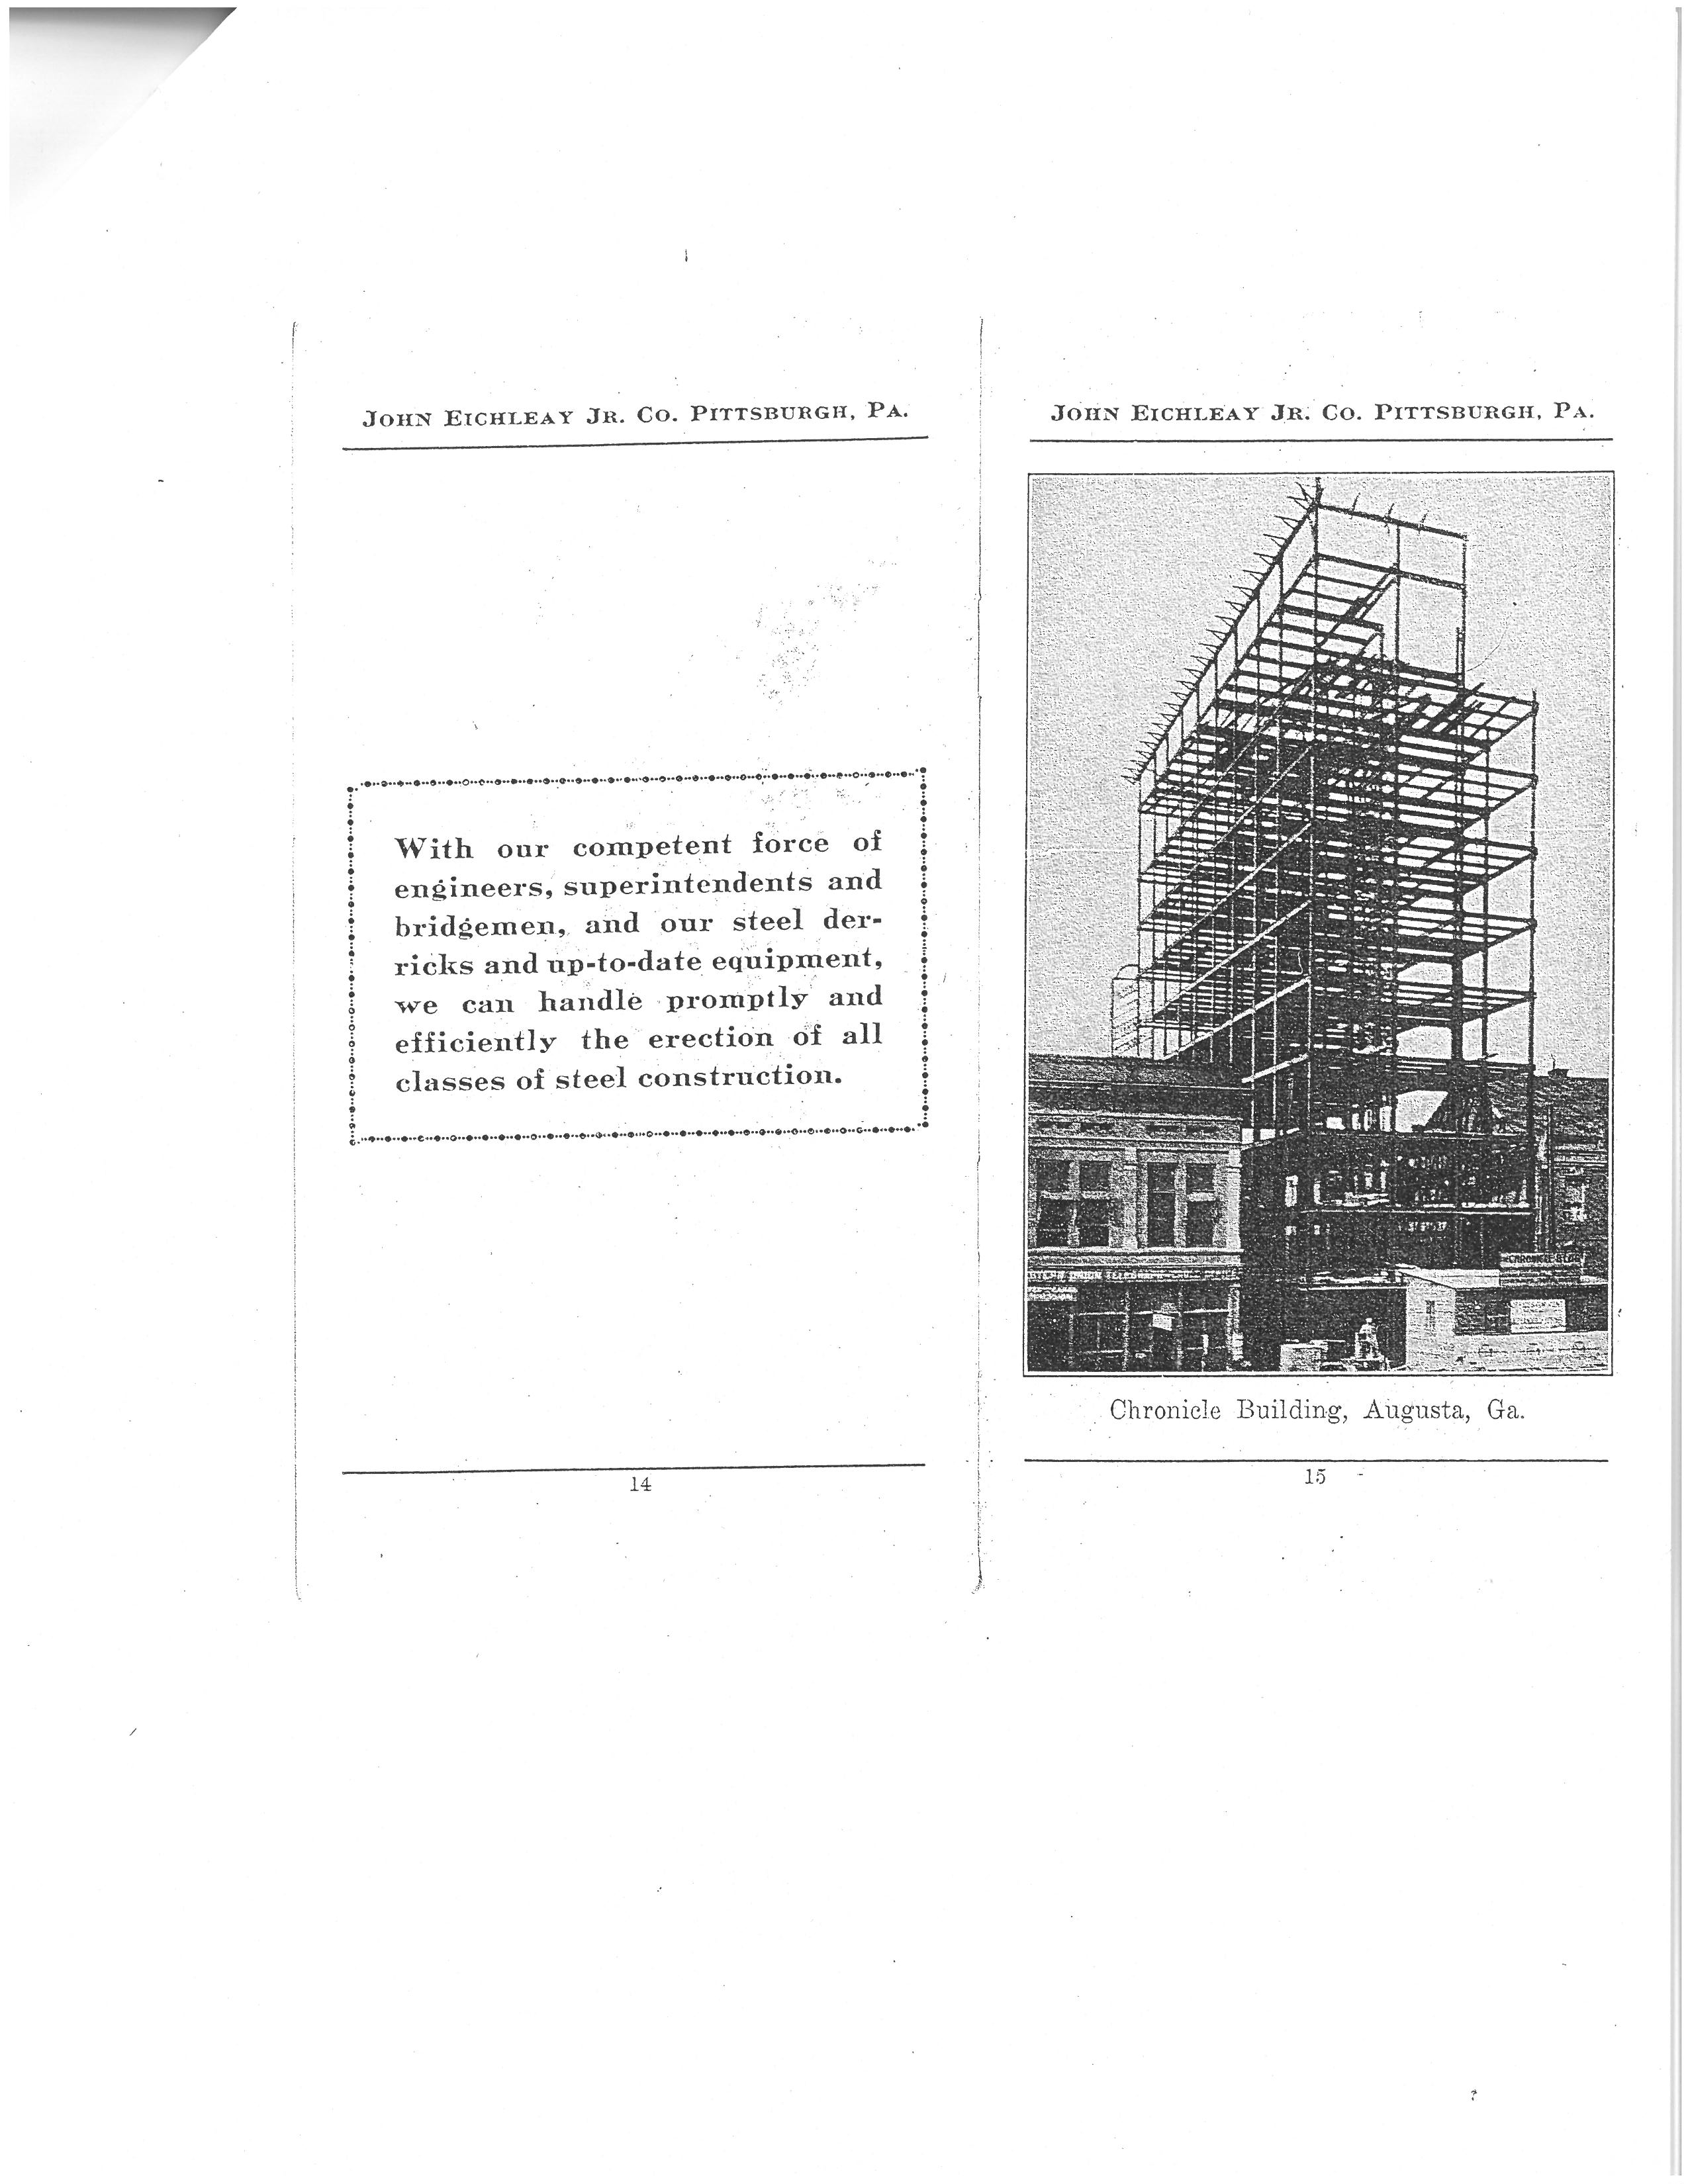 Construction Phase of Chronicle Building